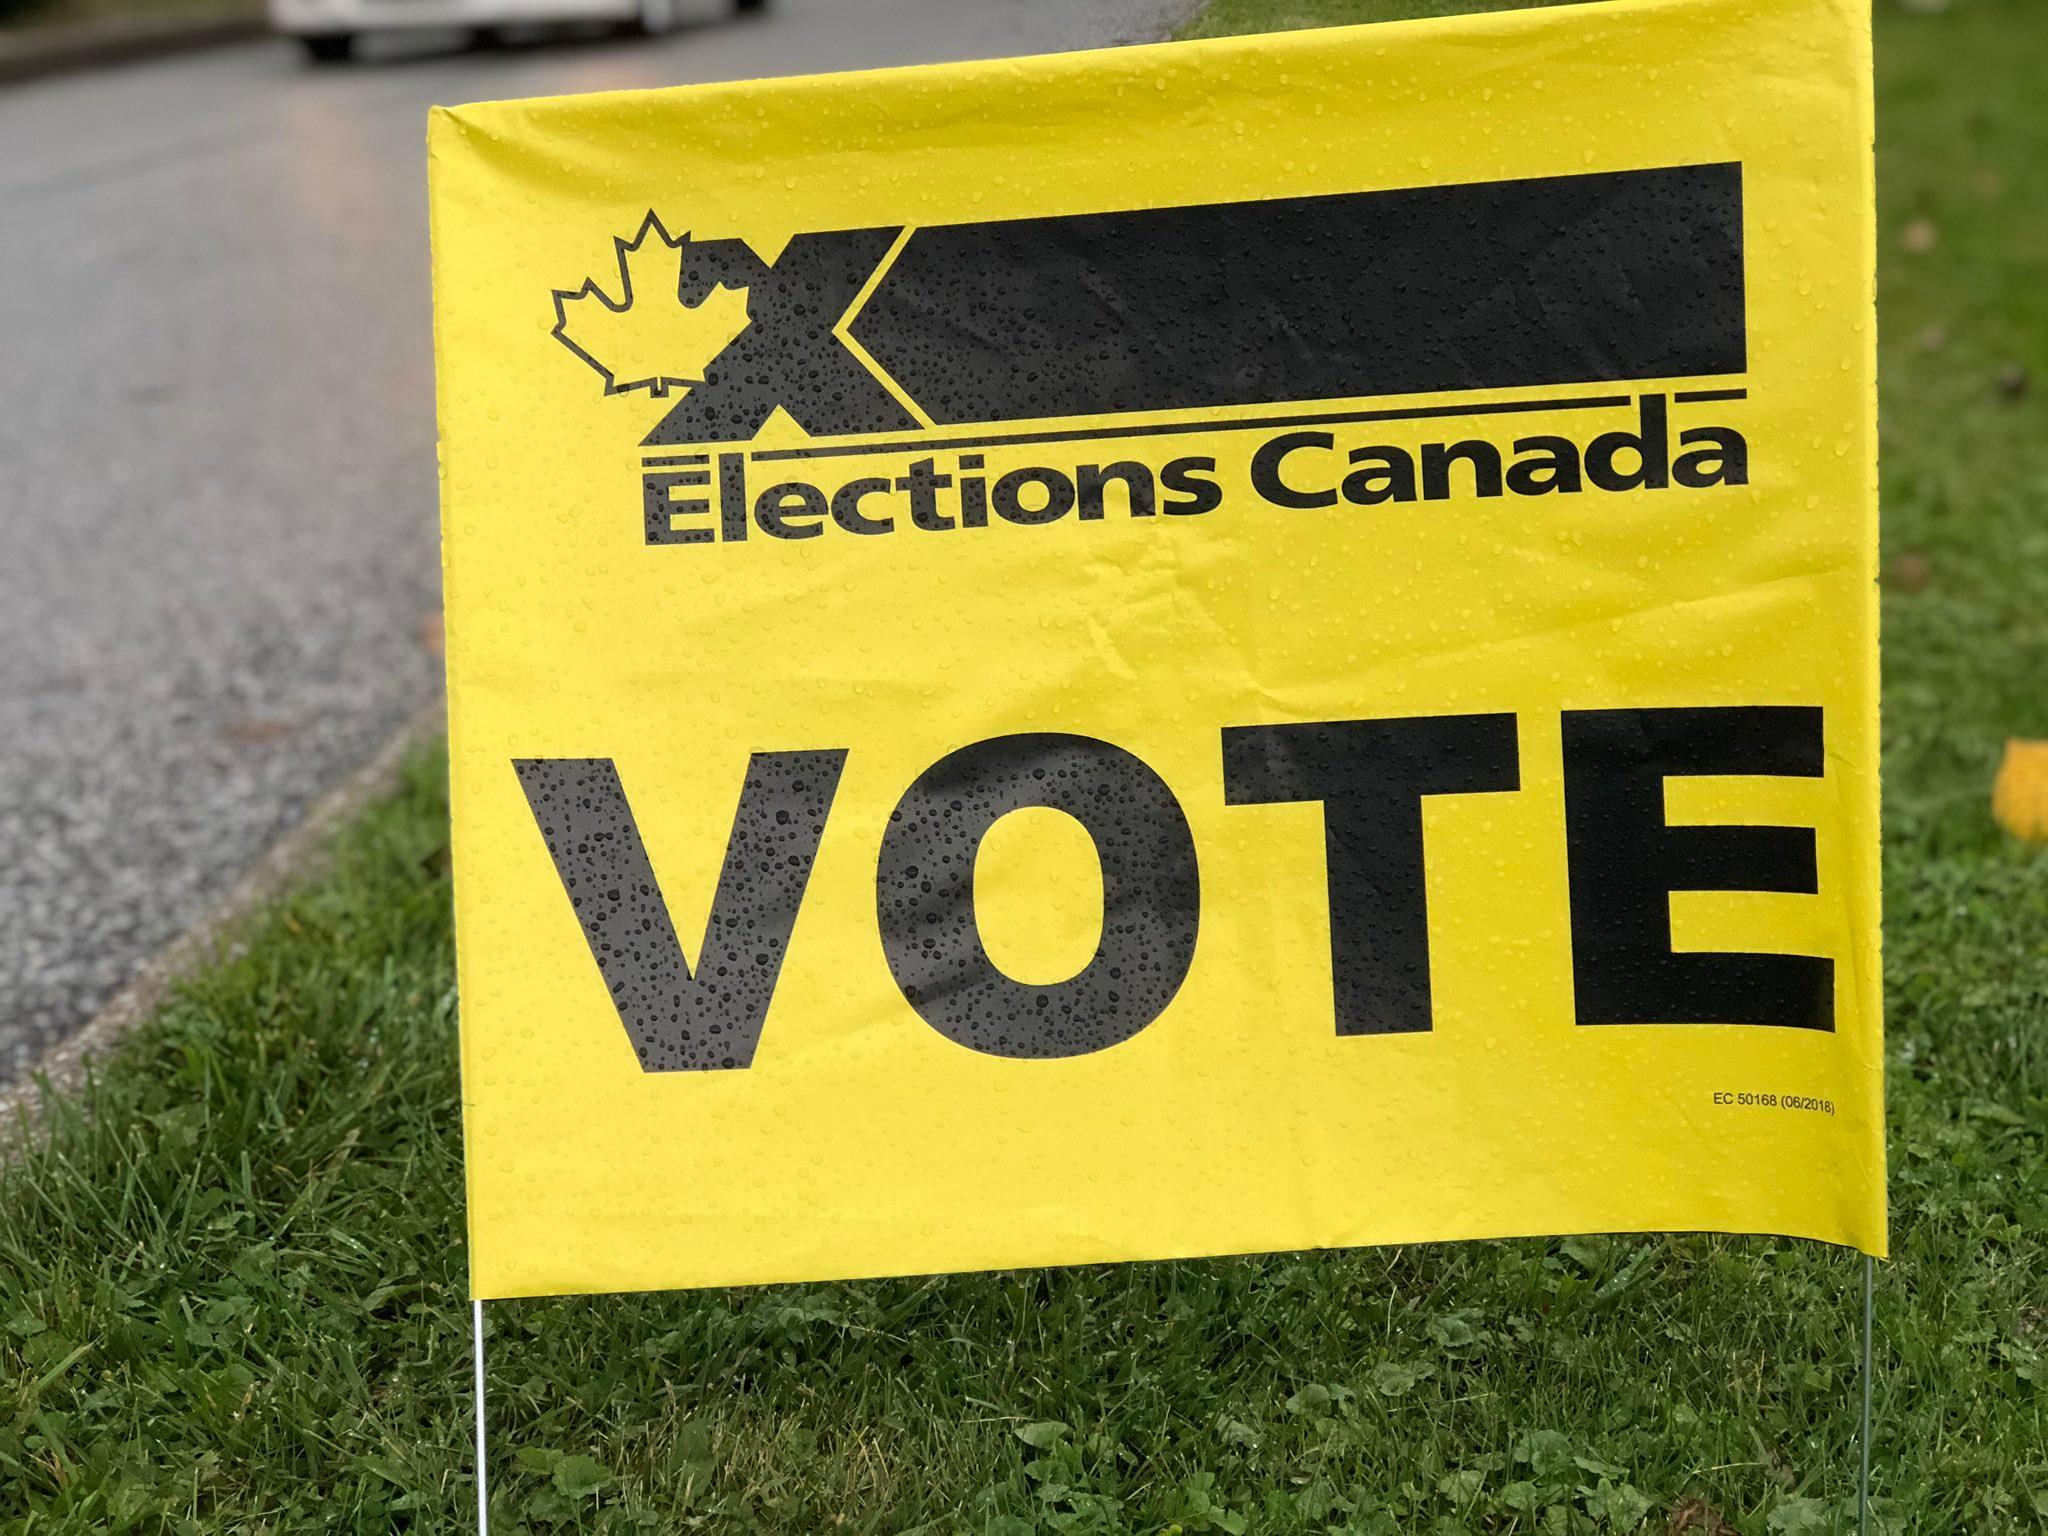 am800-news-vote-elections-canada-october-2019